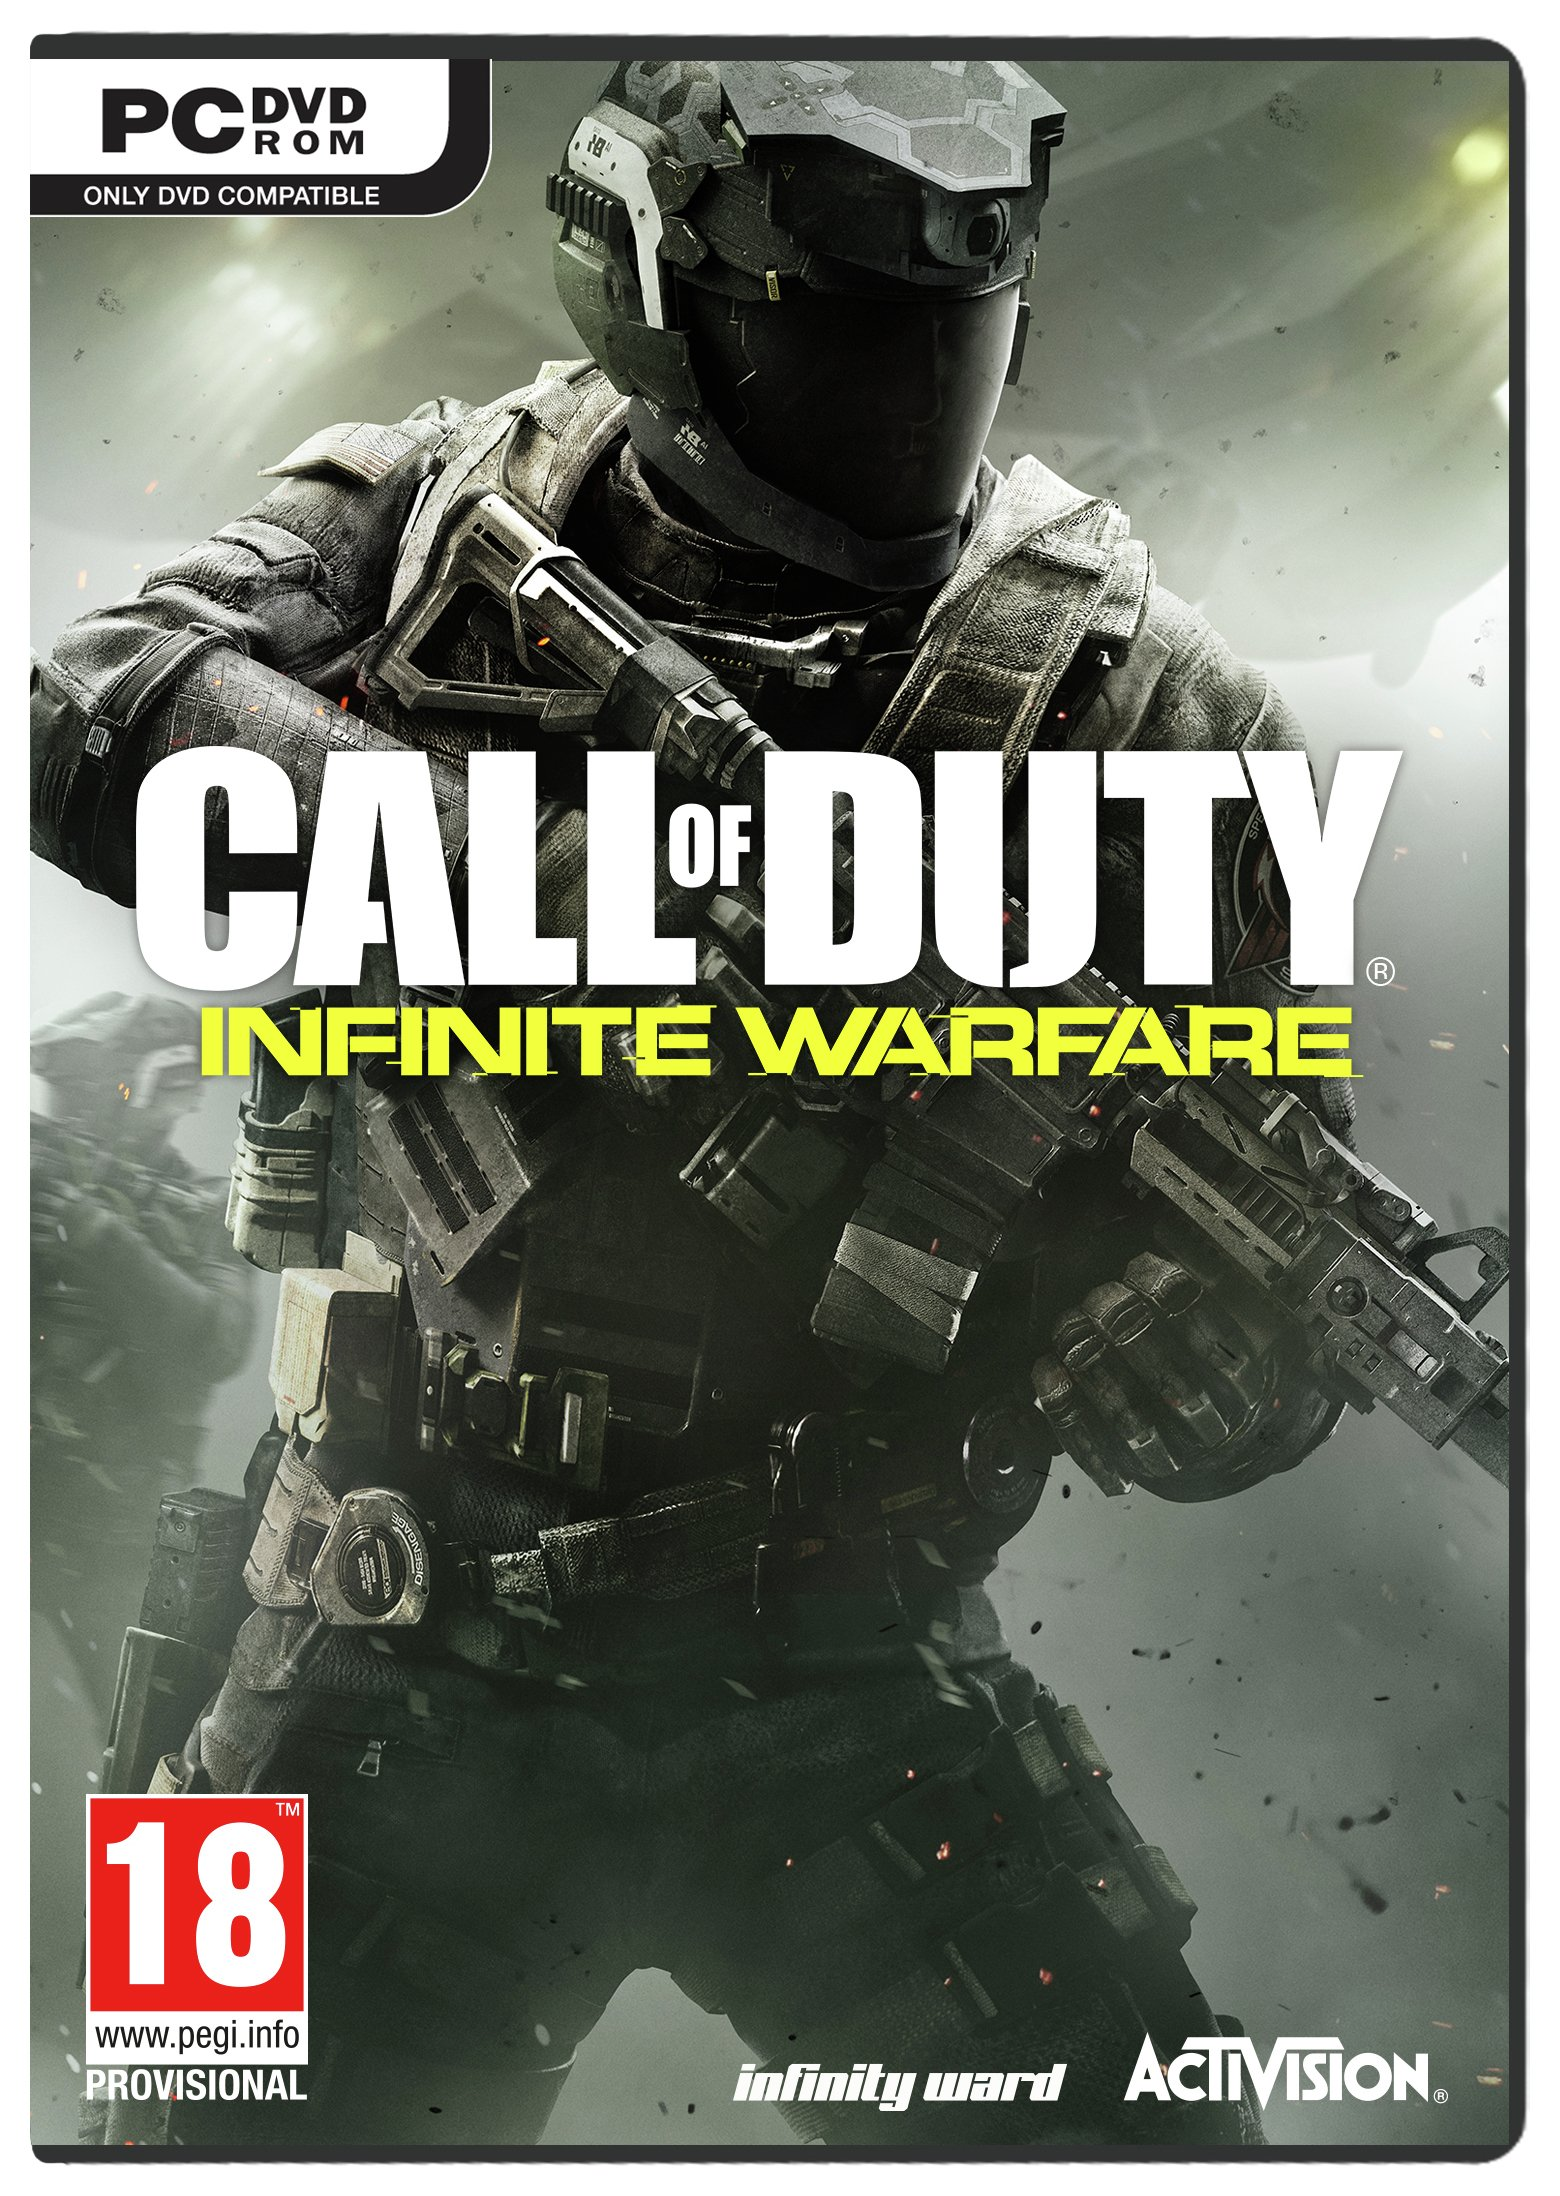 Image of Call of Duty - Infinite Warfare- PC Game